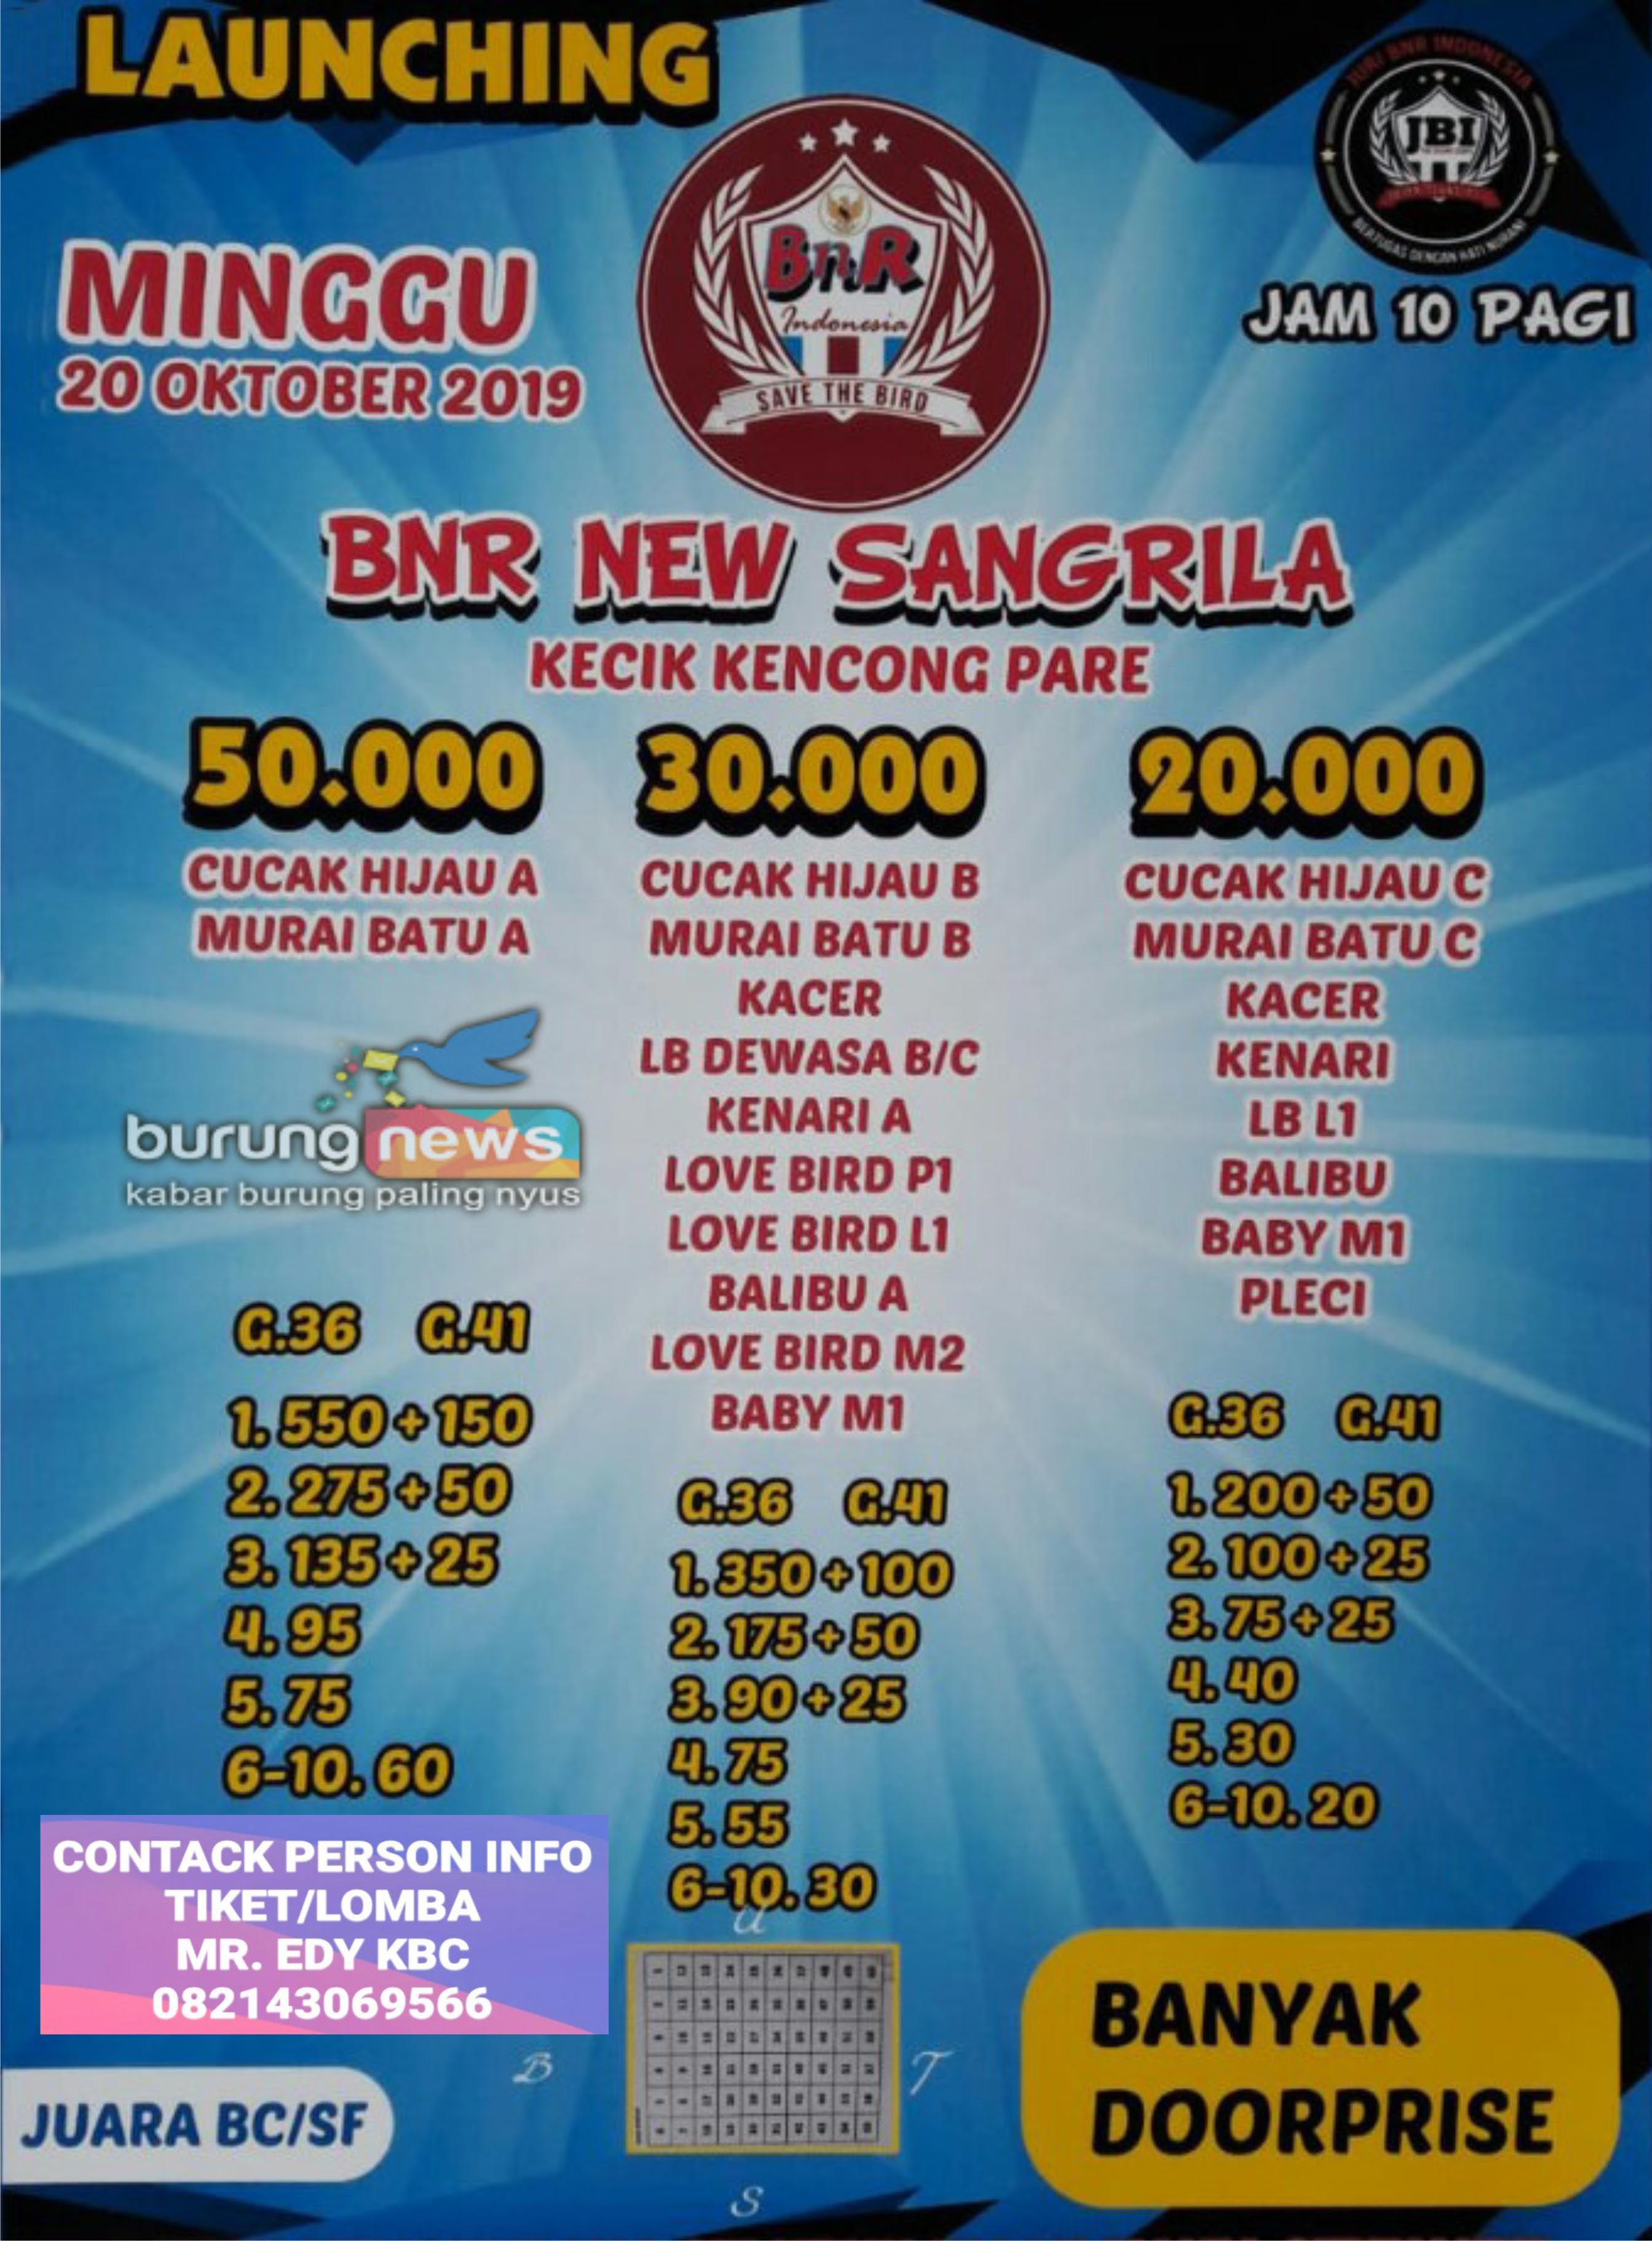 LAUNCHING BNR NEW SANGRILA, PARE KEDIRI